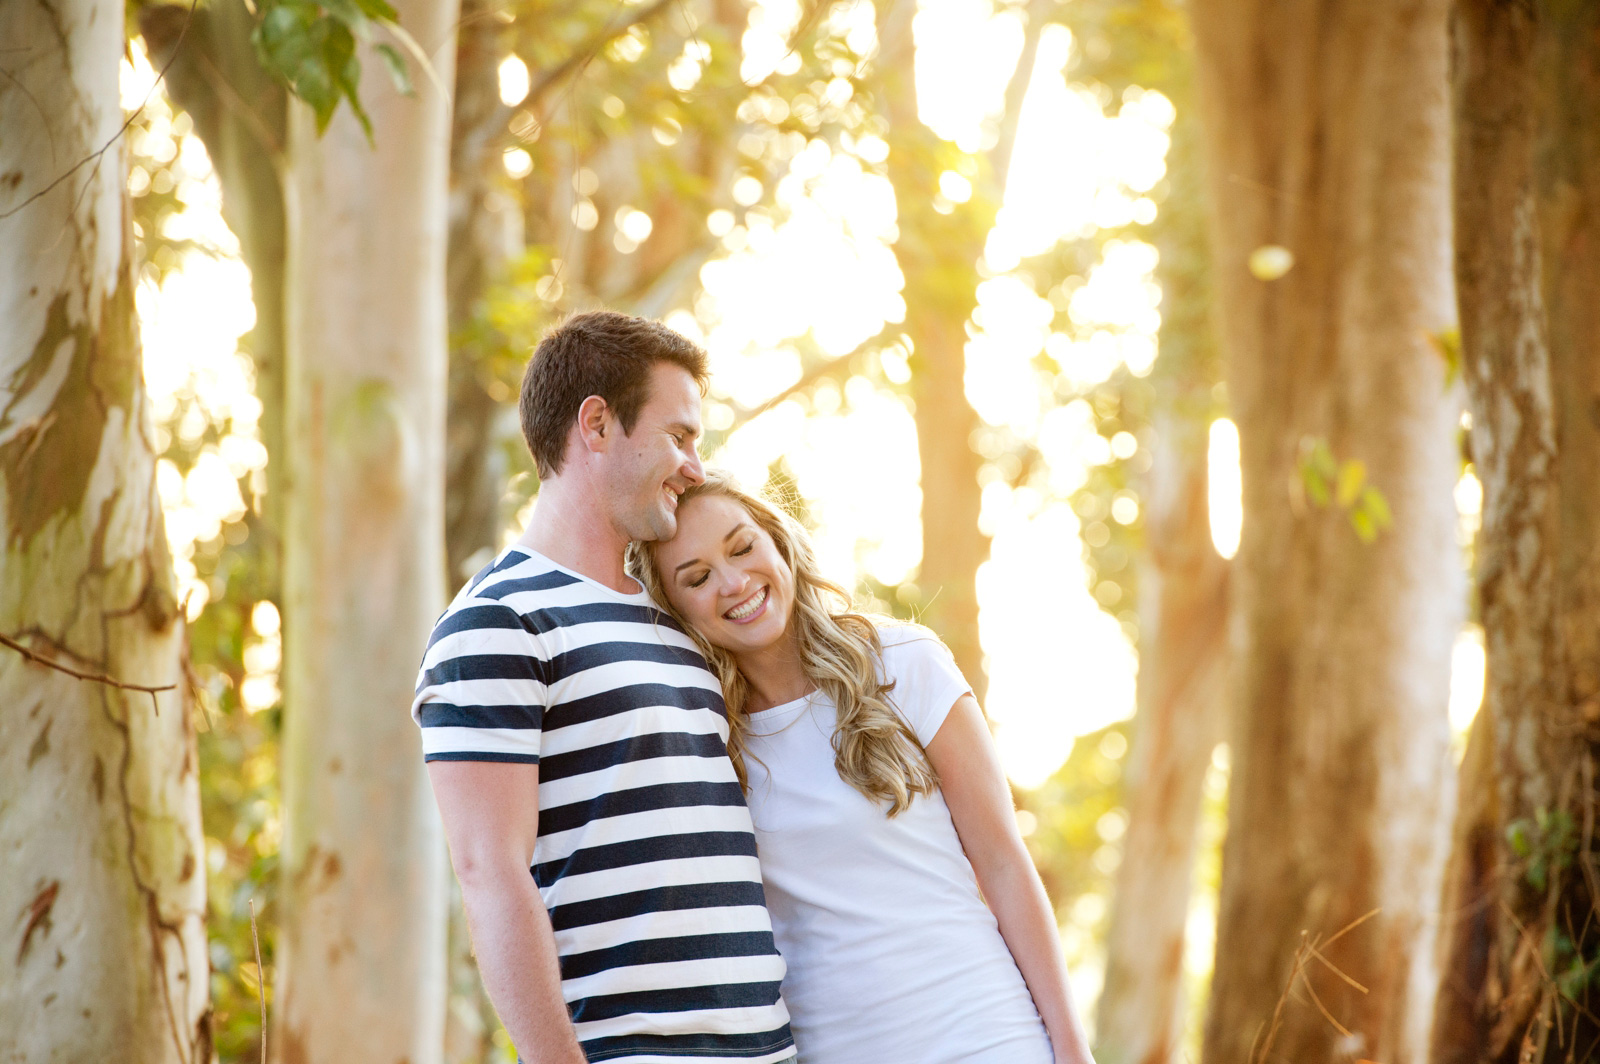 Couple in blue gum trees in Durban